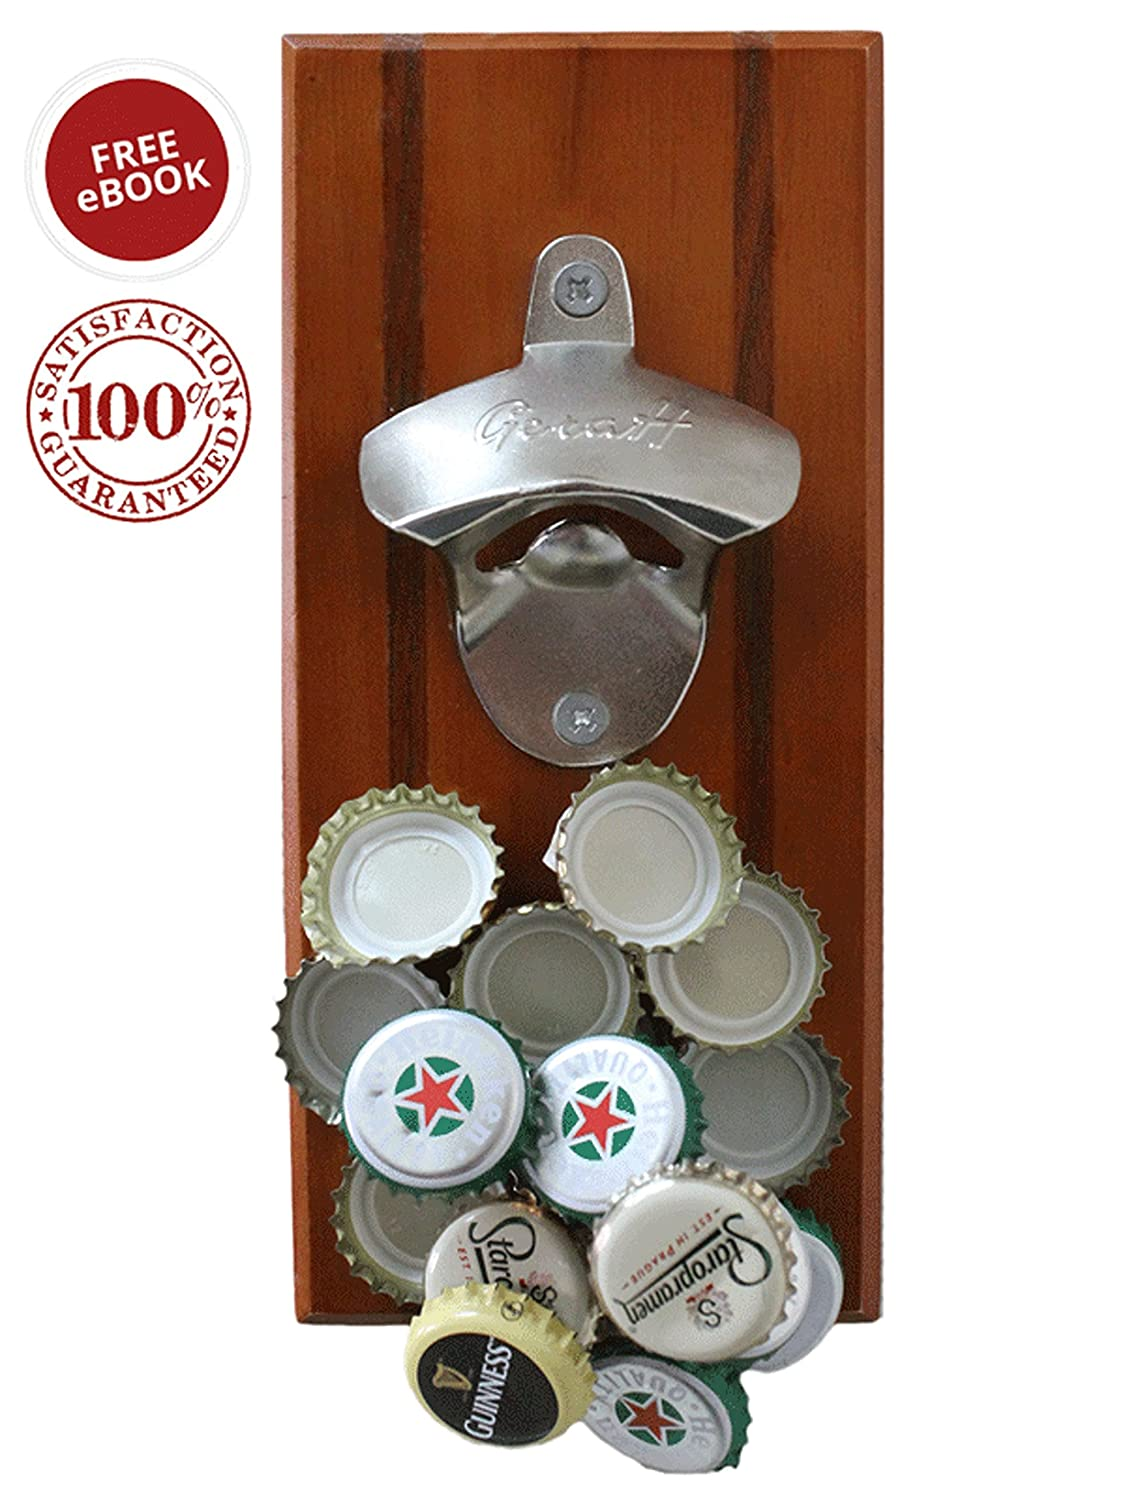 Magnetic wall mounted beverage bottle opener with cap catcher for no mess ebay - Bottle opener wall mount magnet ...